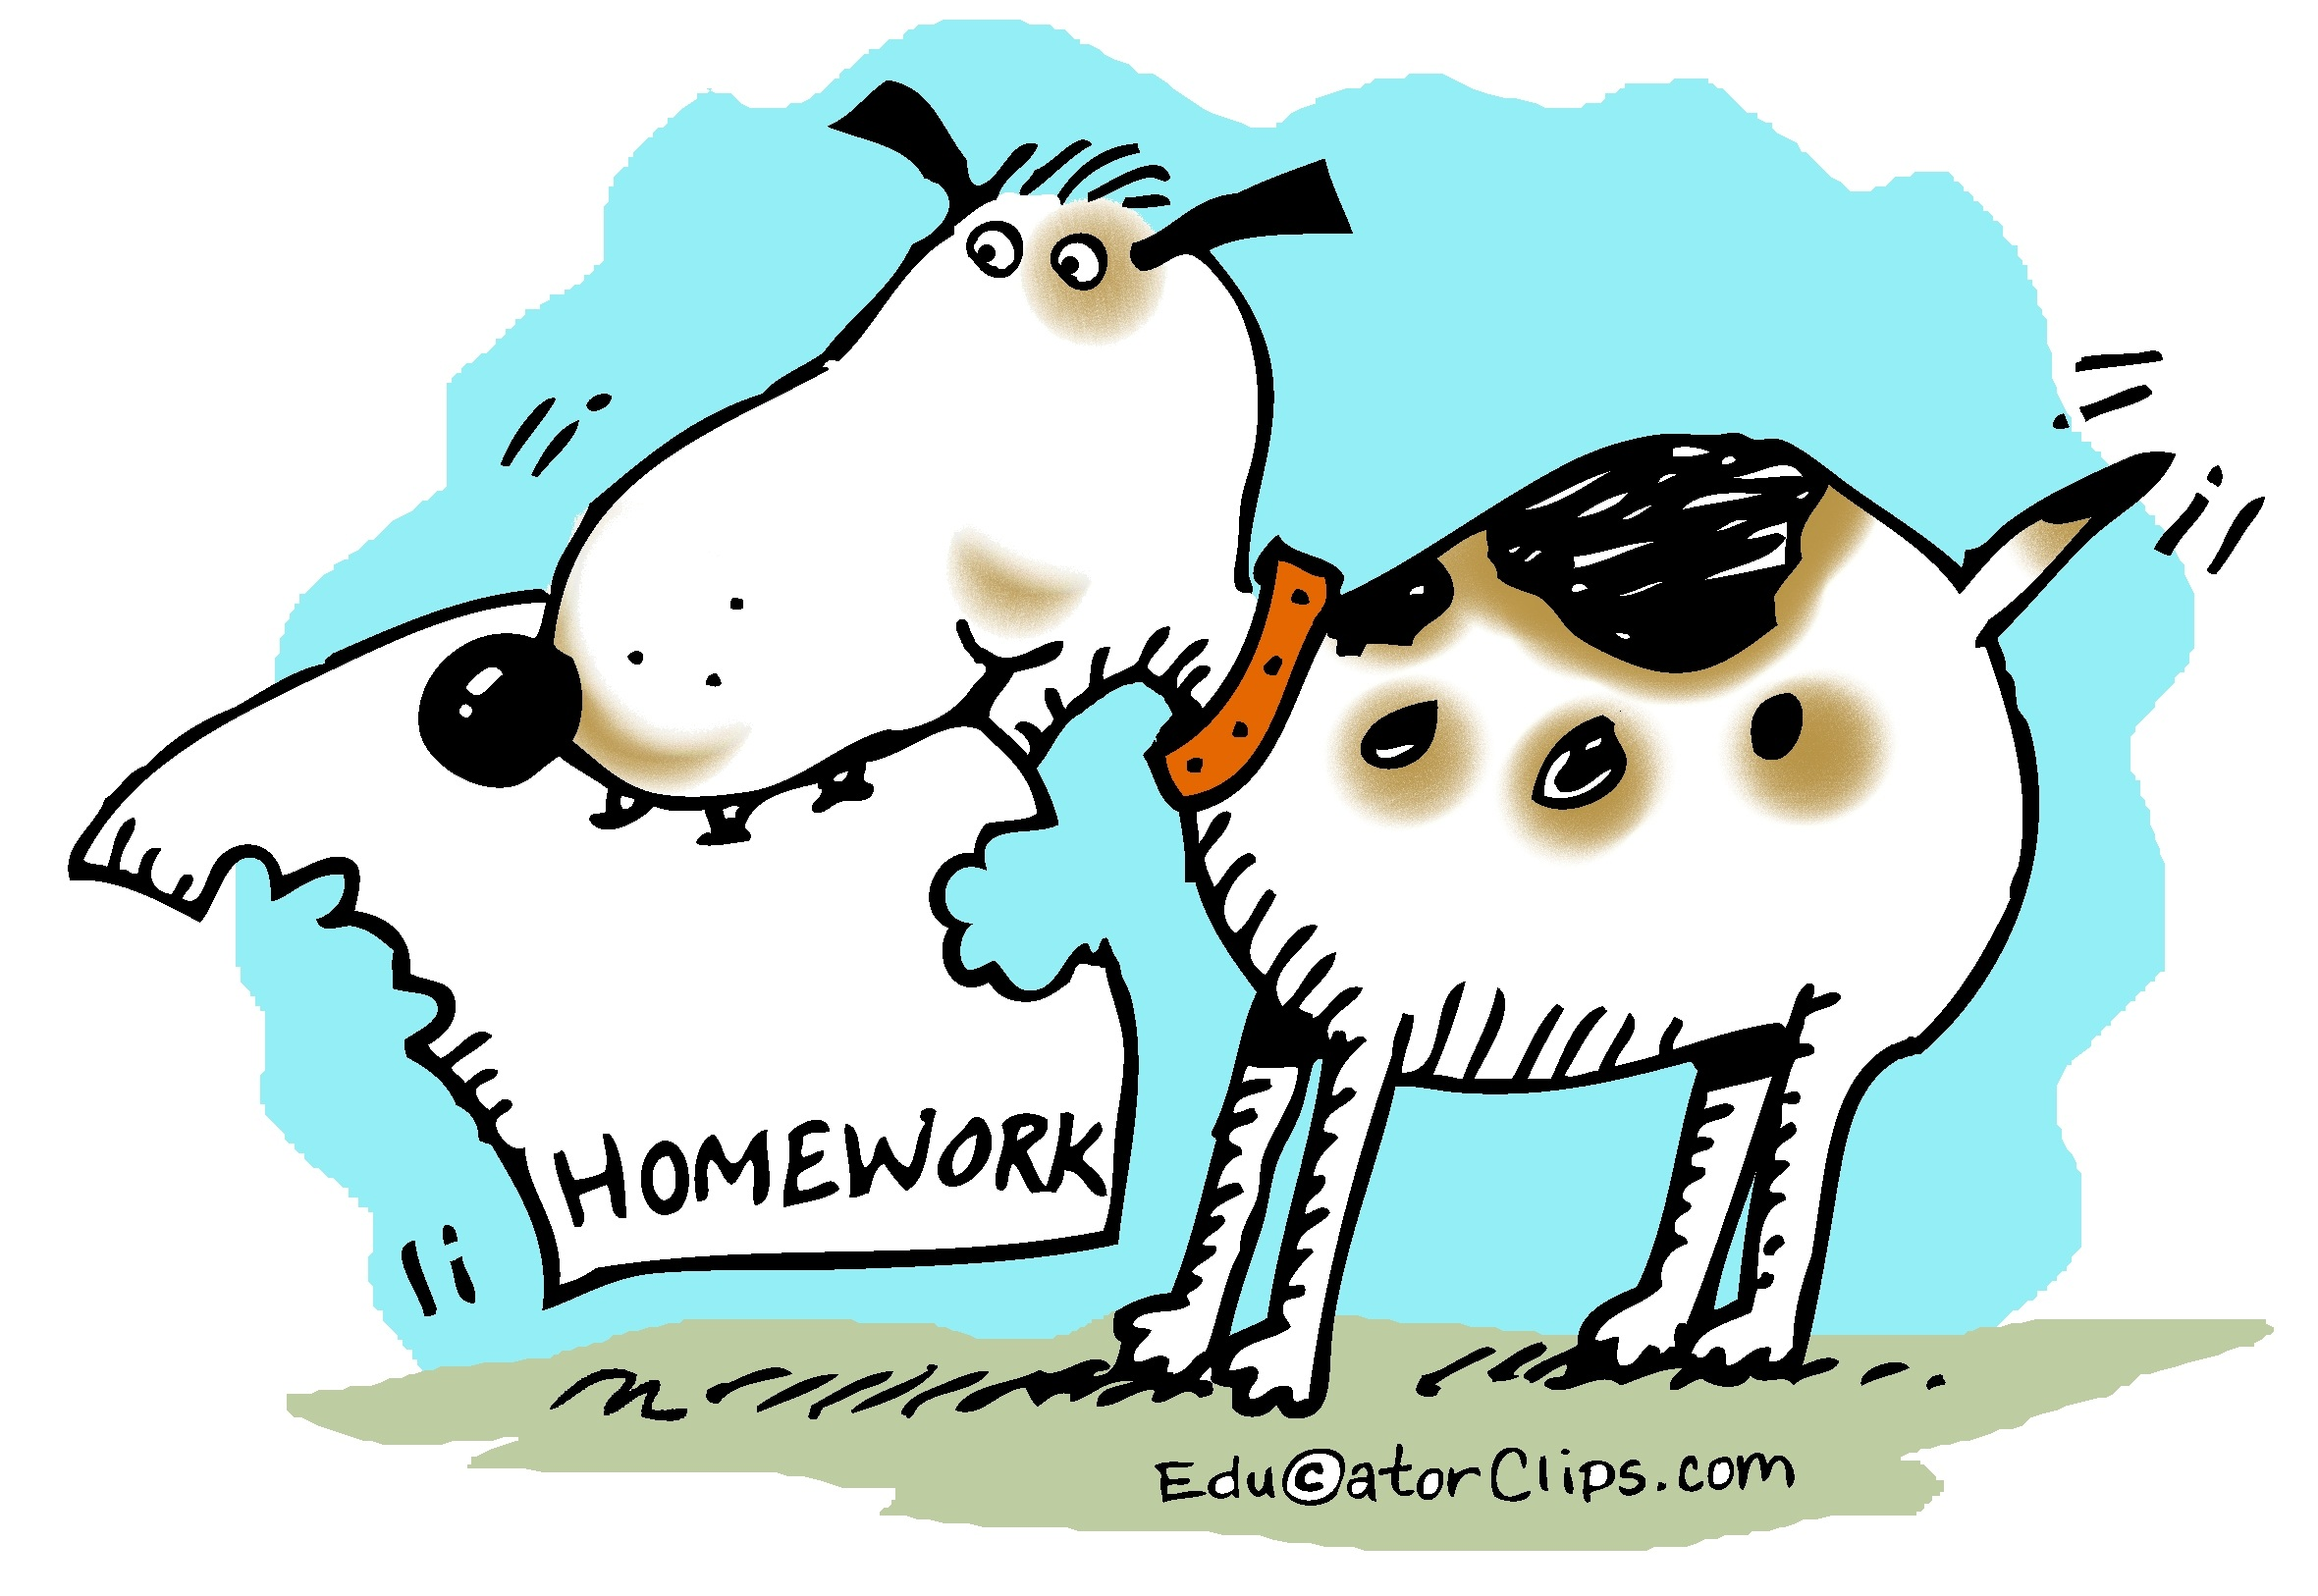 Cartoon images of the dog ate my homework